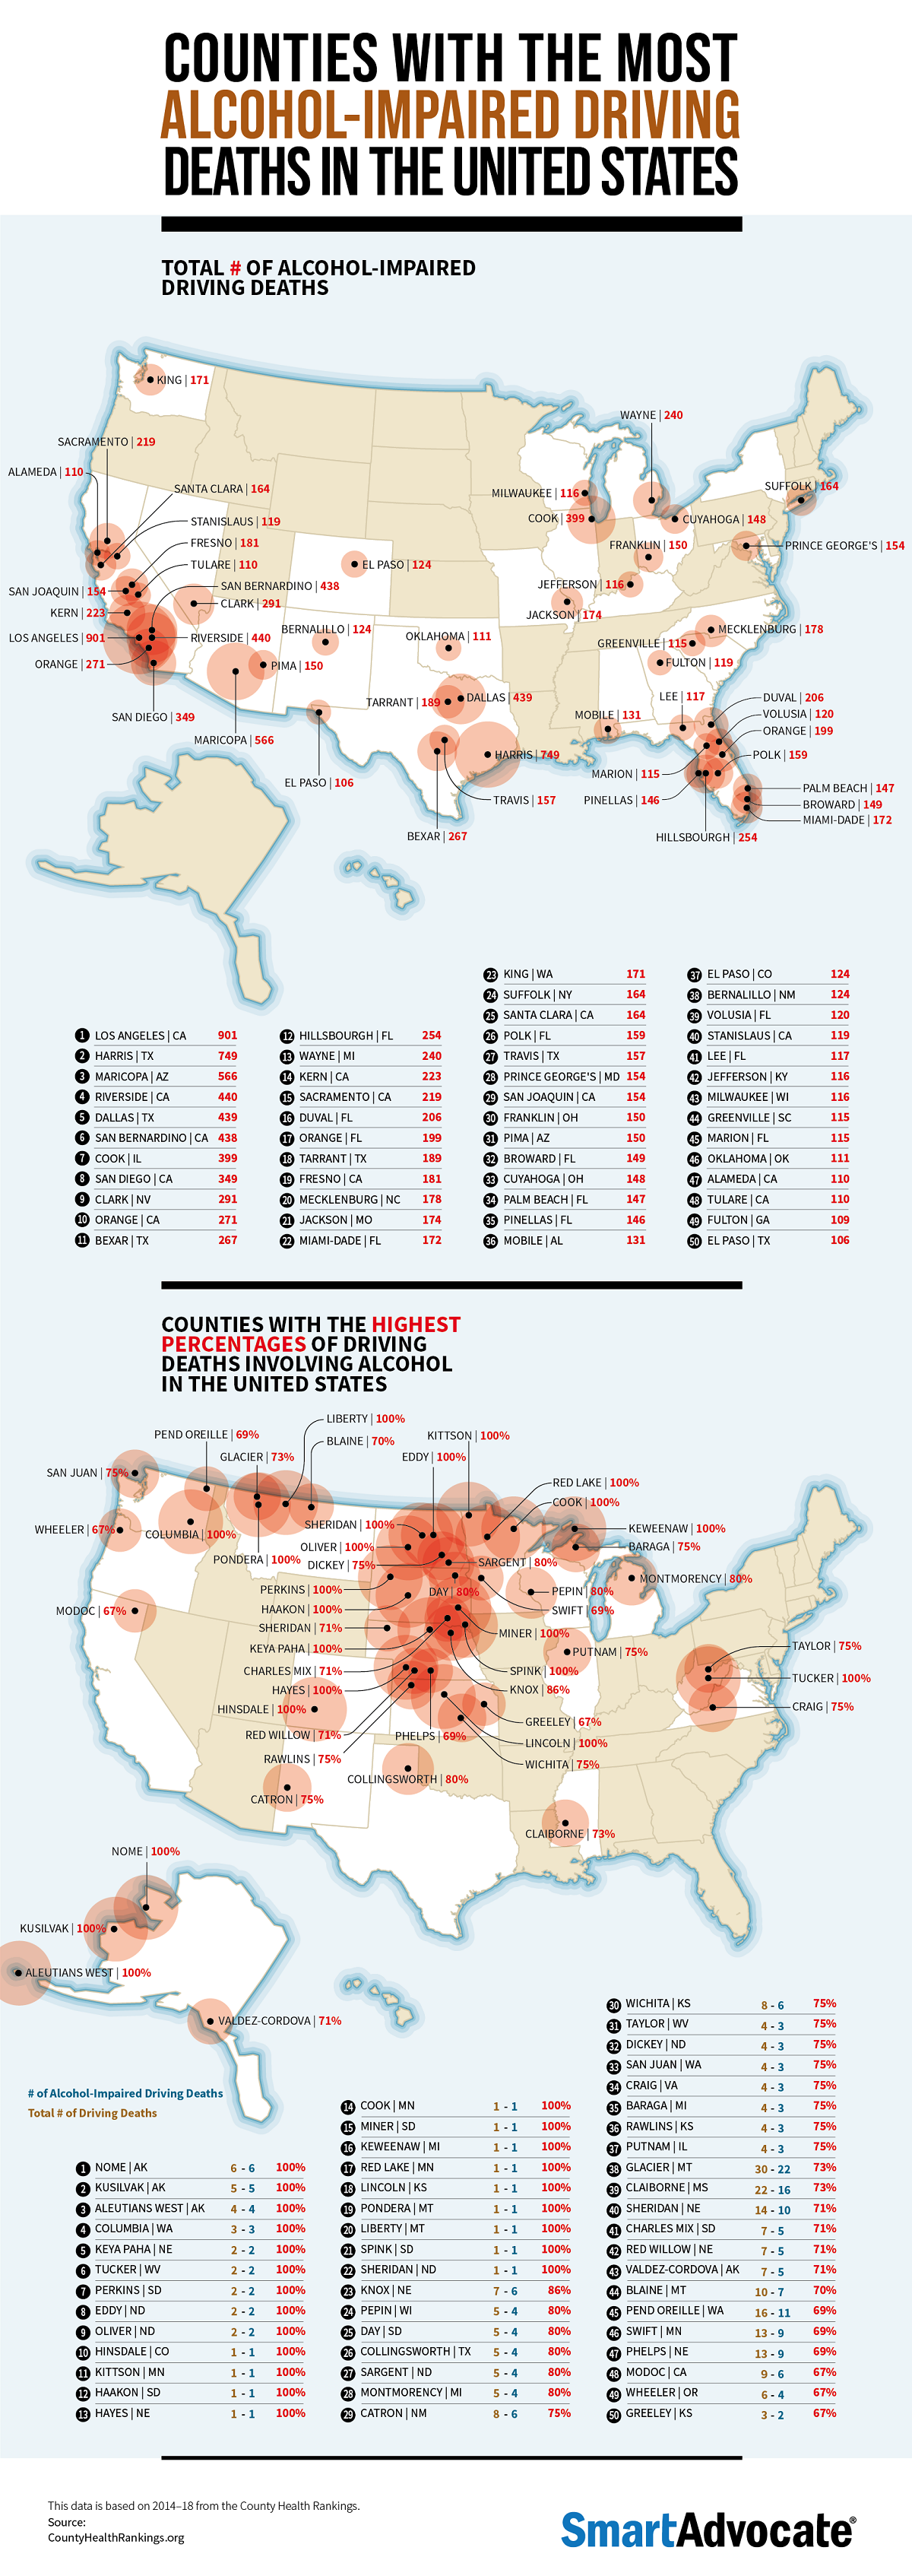 Counties With the Most Alcohol-Impaired Driving Deaths in the United States #Infographic